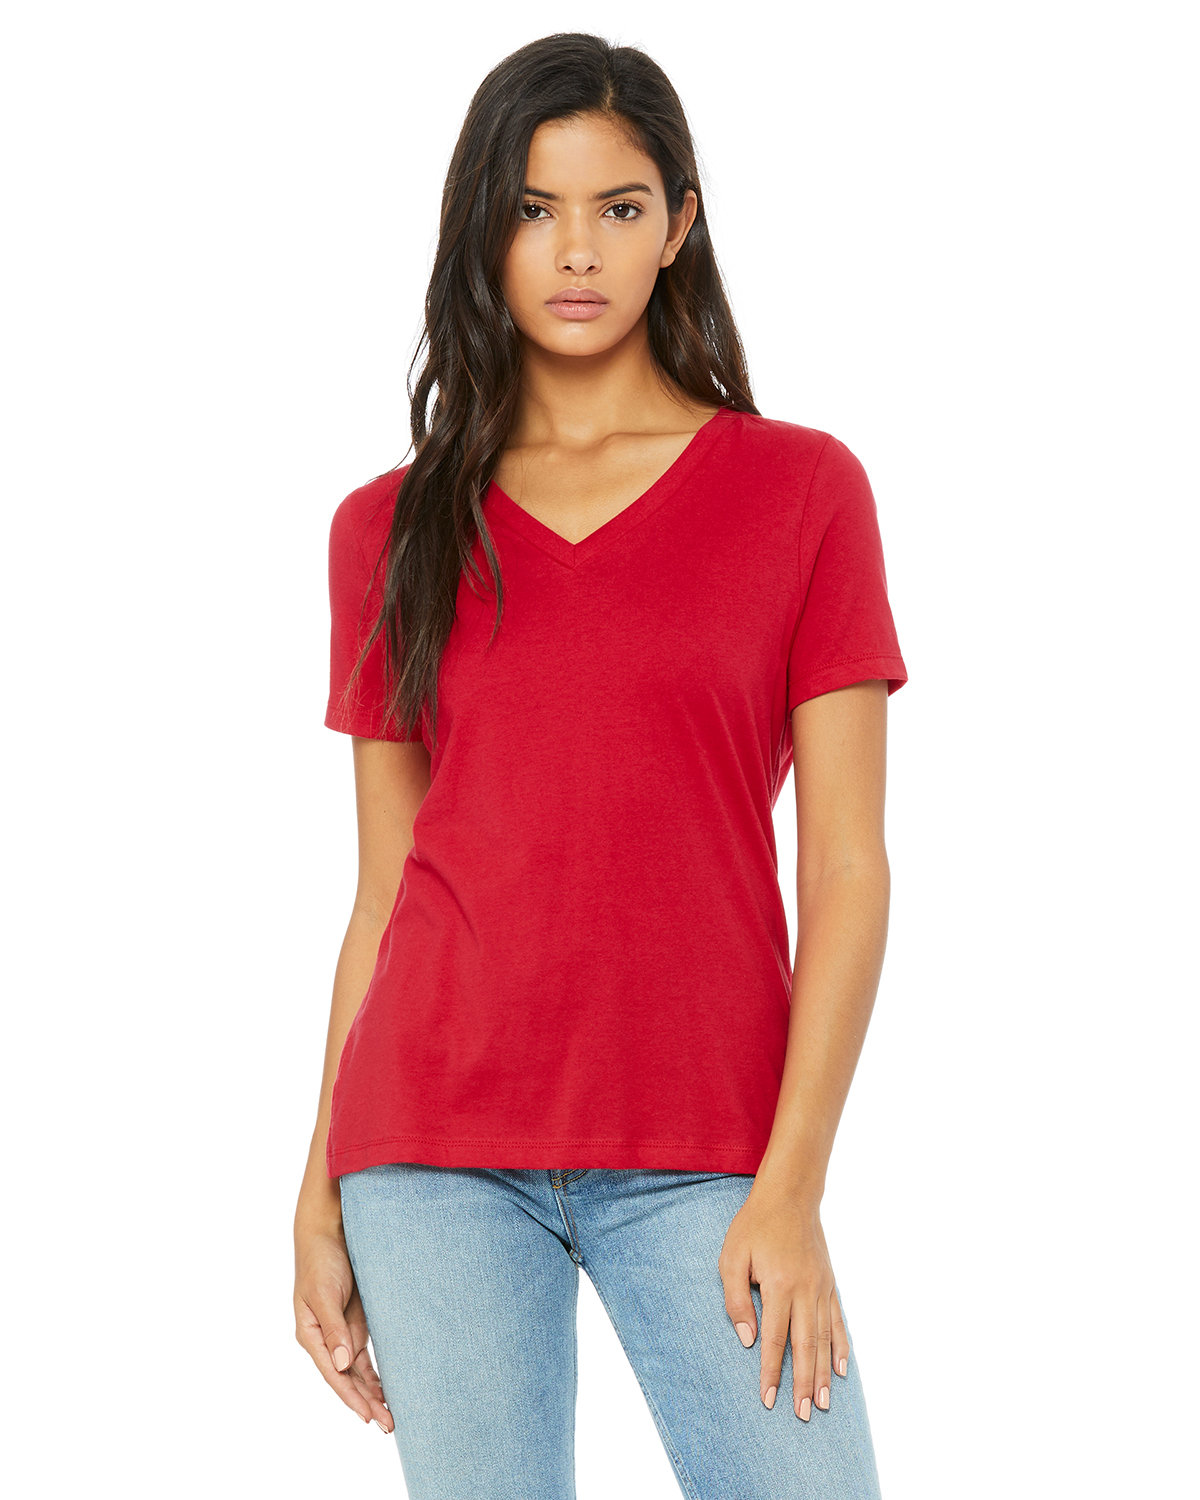 Bella + Canvas Ladies' Relaxed Jersey V-Neck T-Shirt RED